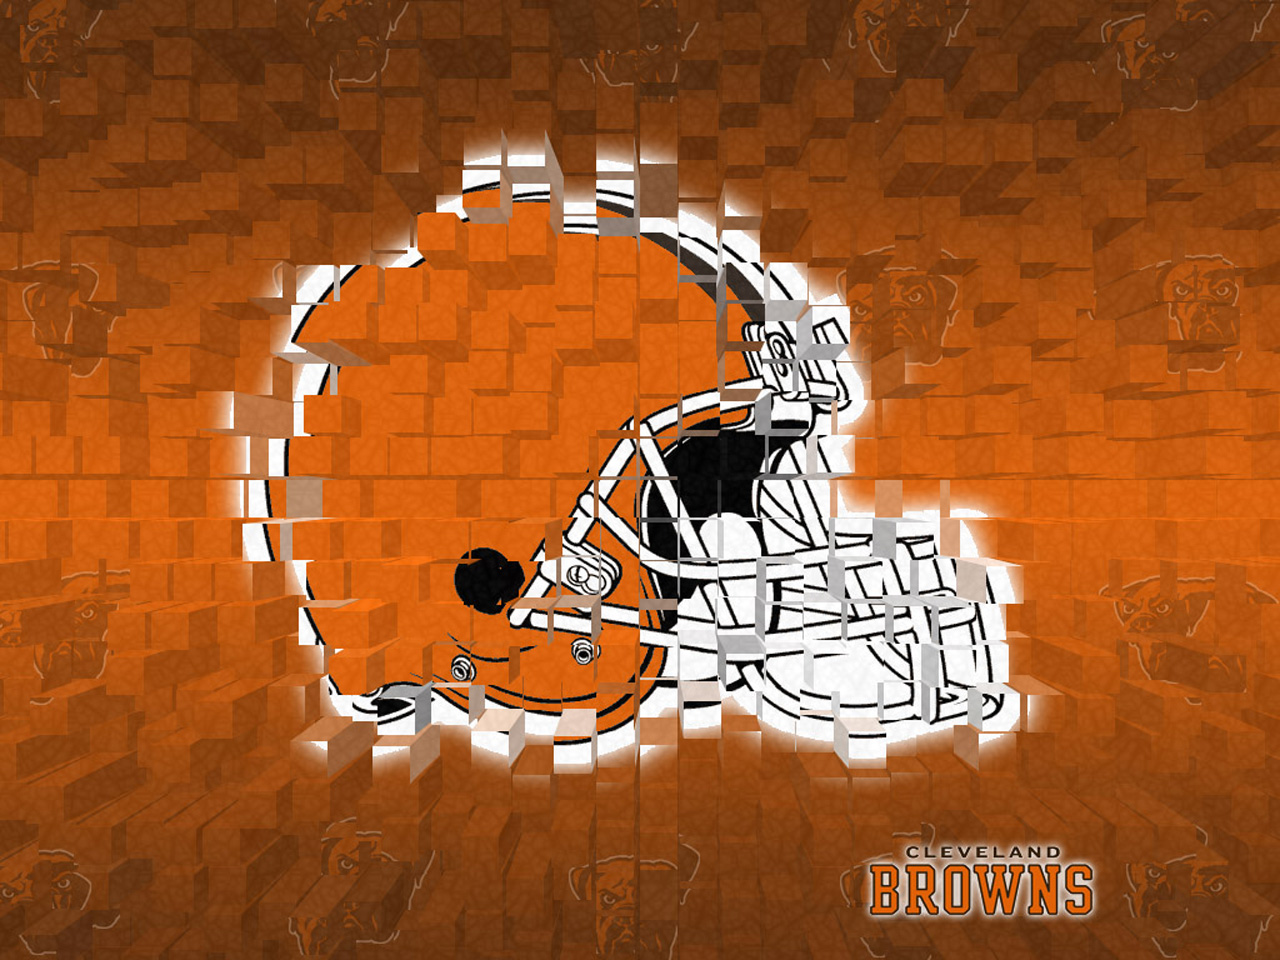 Cleveland Browns images Cleveland Browns Helmet HD ...